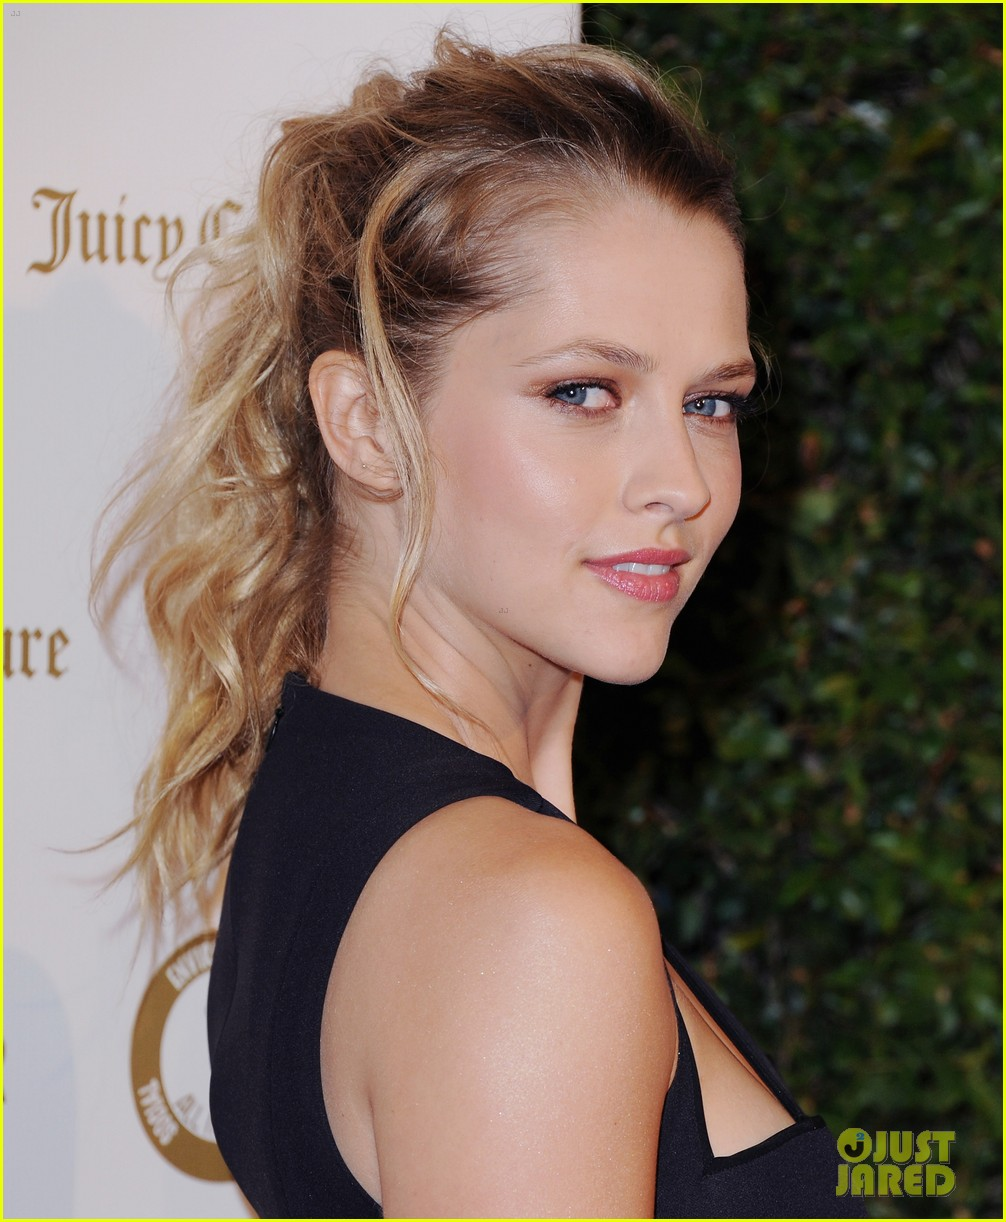 teresa palmer фотоteresa palmer gif, teresa palmer instagram, teresa palmer hacksaw ridge, teresa palmer movies, teresa palmer фильмы, teresa palmer фото, teresa palmer films, teresa palmer 2017, teresa palmer valentino, teresa palmer wikipedia, teresa palmer gif tumblr, teresa palmer and mark webber, teresa palmer wiki, teresa palmer i am number four, teresa palmer png, teresa palmer site, teresa palmer artistry 2017, teresa palmer fashion spot, teresa palmer photo hot, teresa palmer and husband